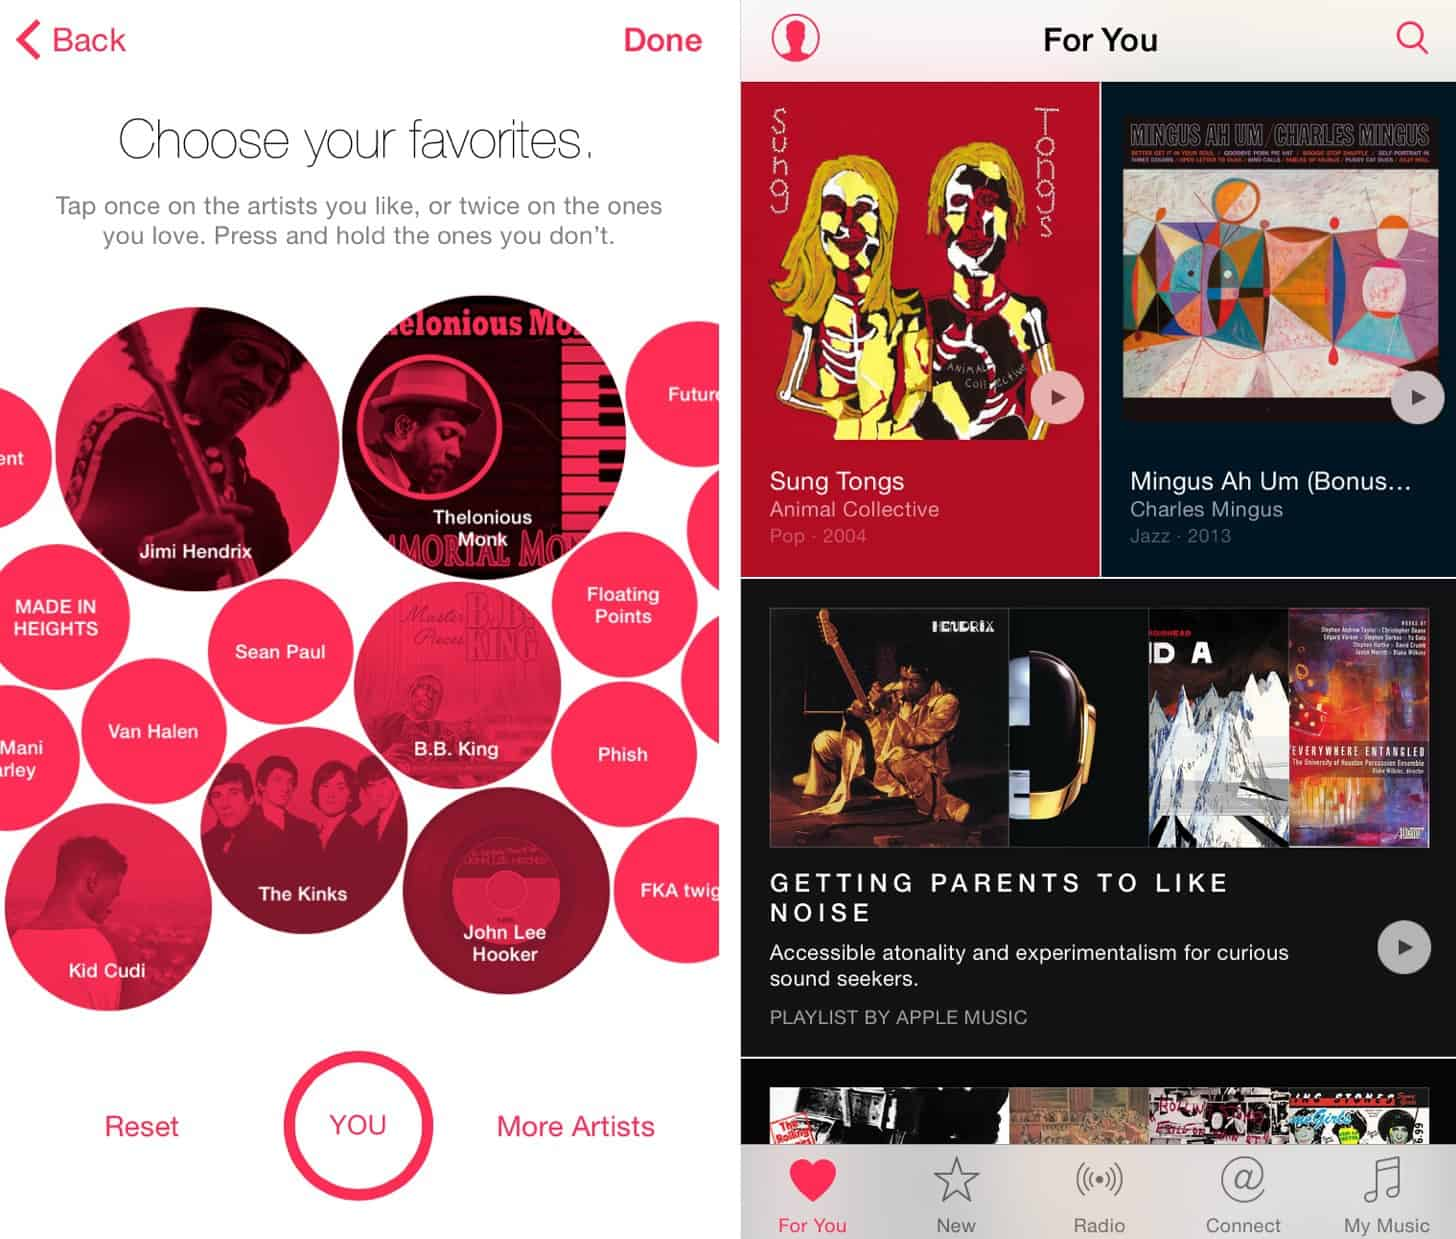 How To: Refine Apple Music and get better 'For You